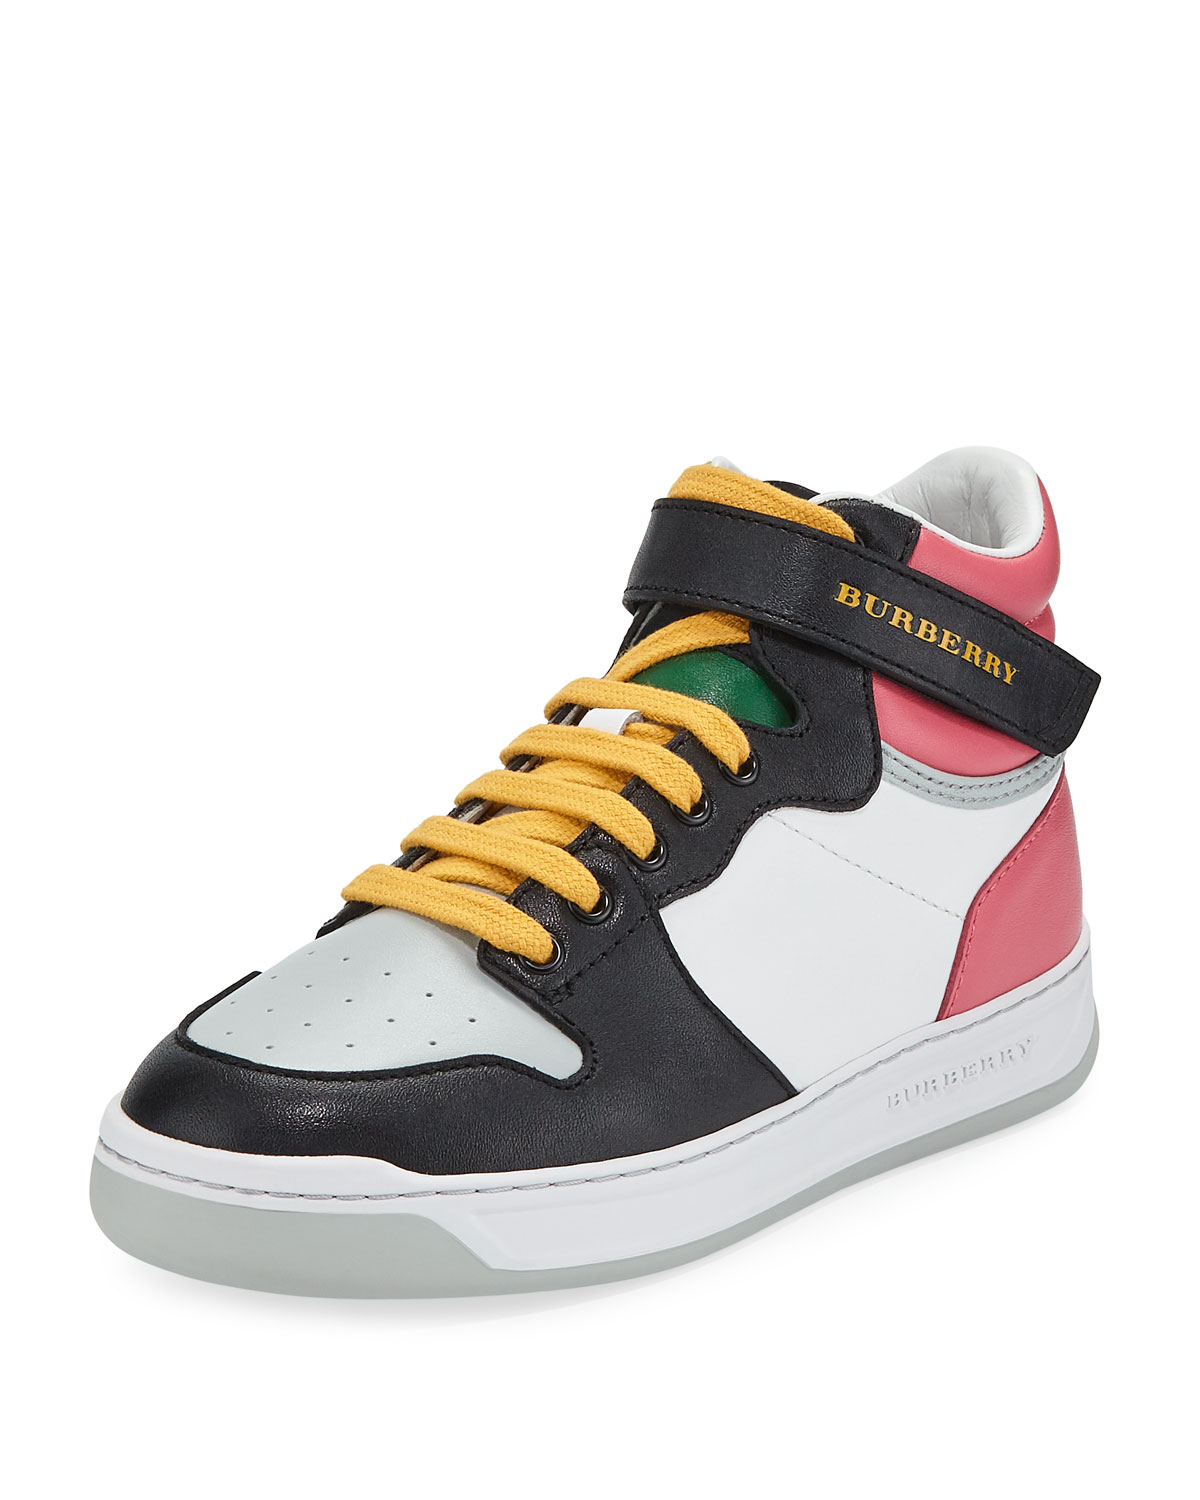 343a9489d18e Burberry Duck Leather Colorblock High-Top Sneaker